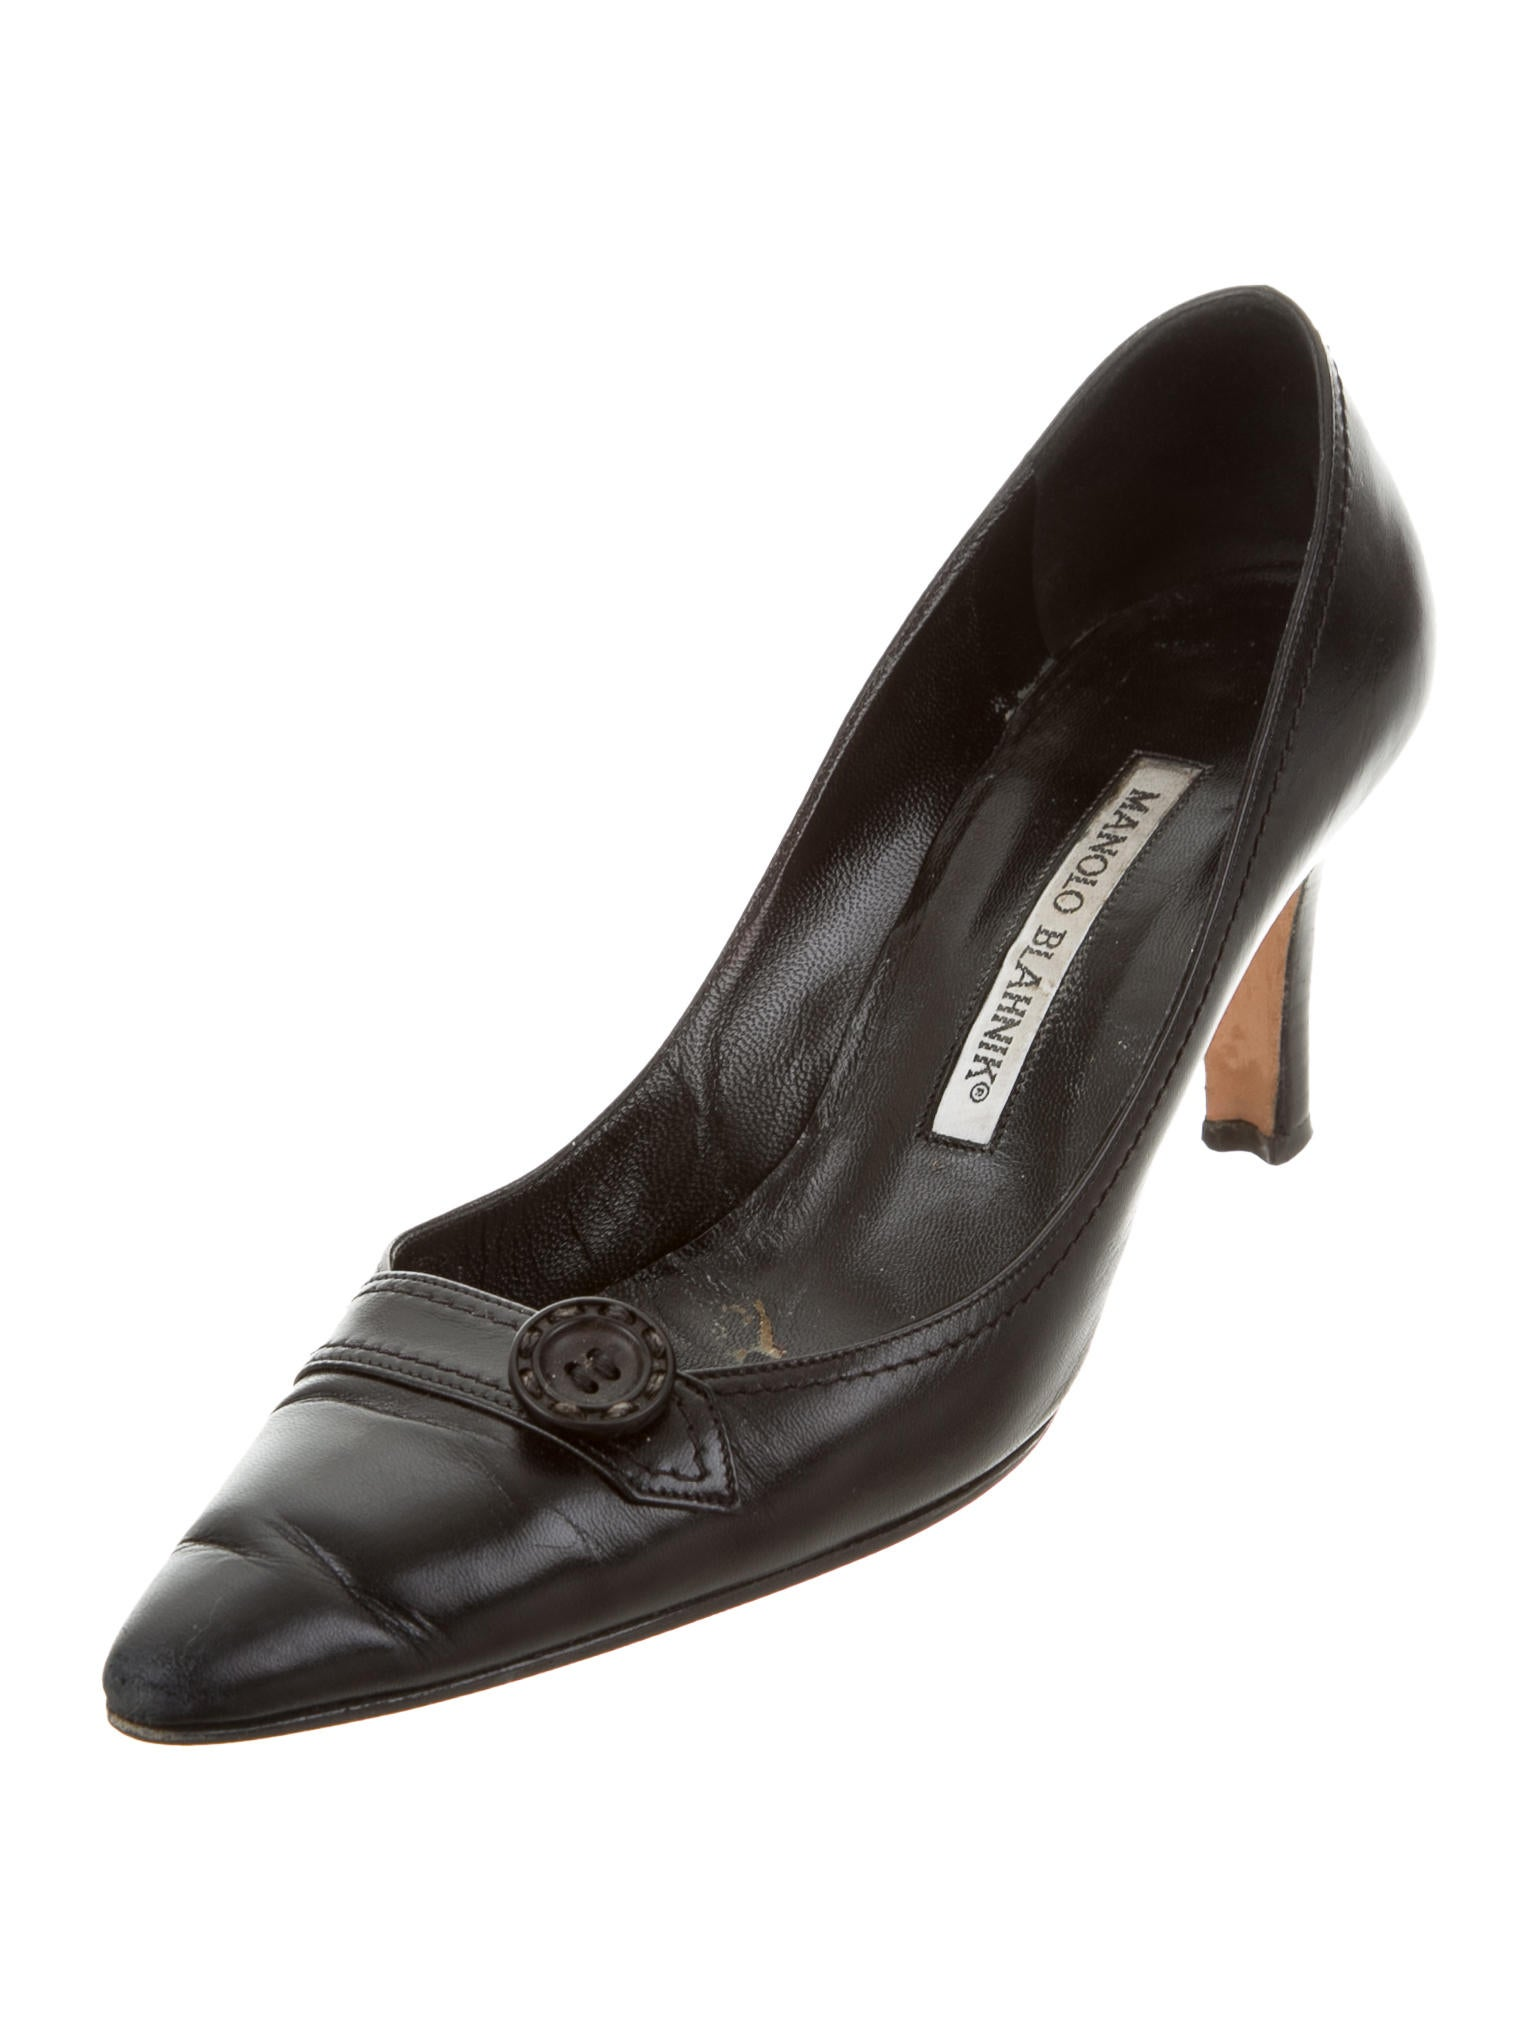 Manolo blahnik leather pointed toe pumps shoes for Shoes by manolo blahnik